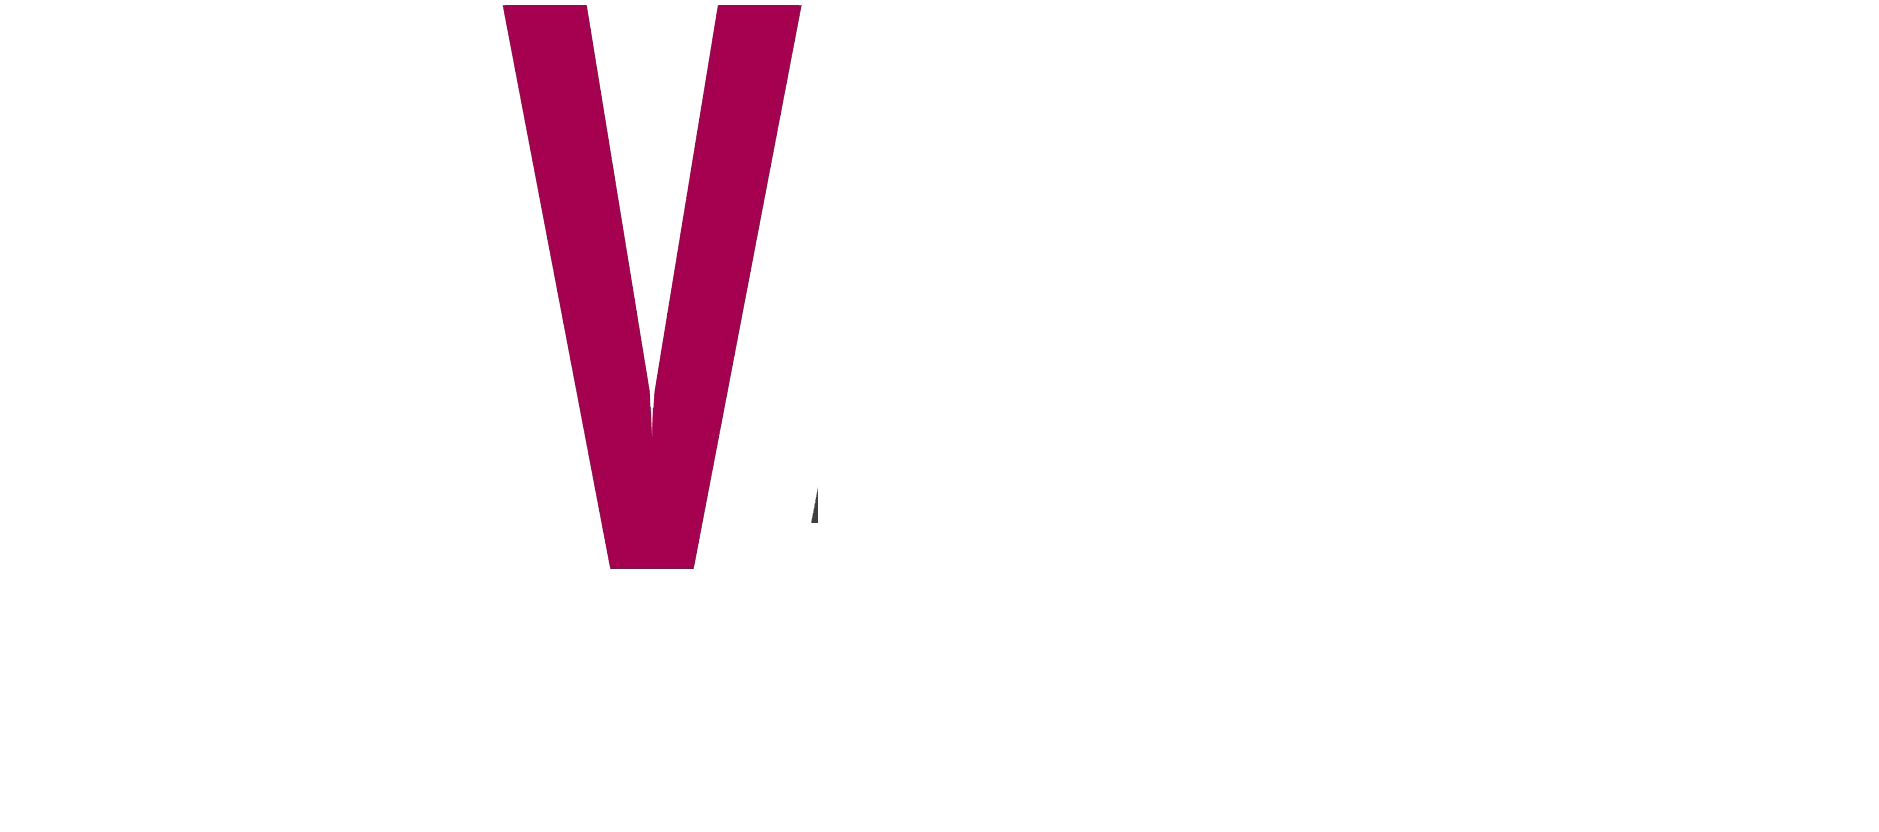 Vivaldi Furniture